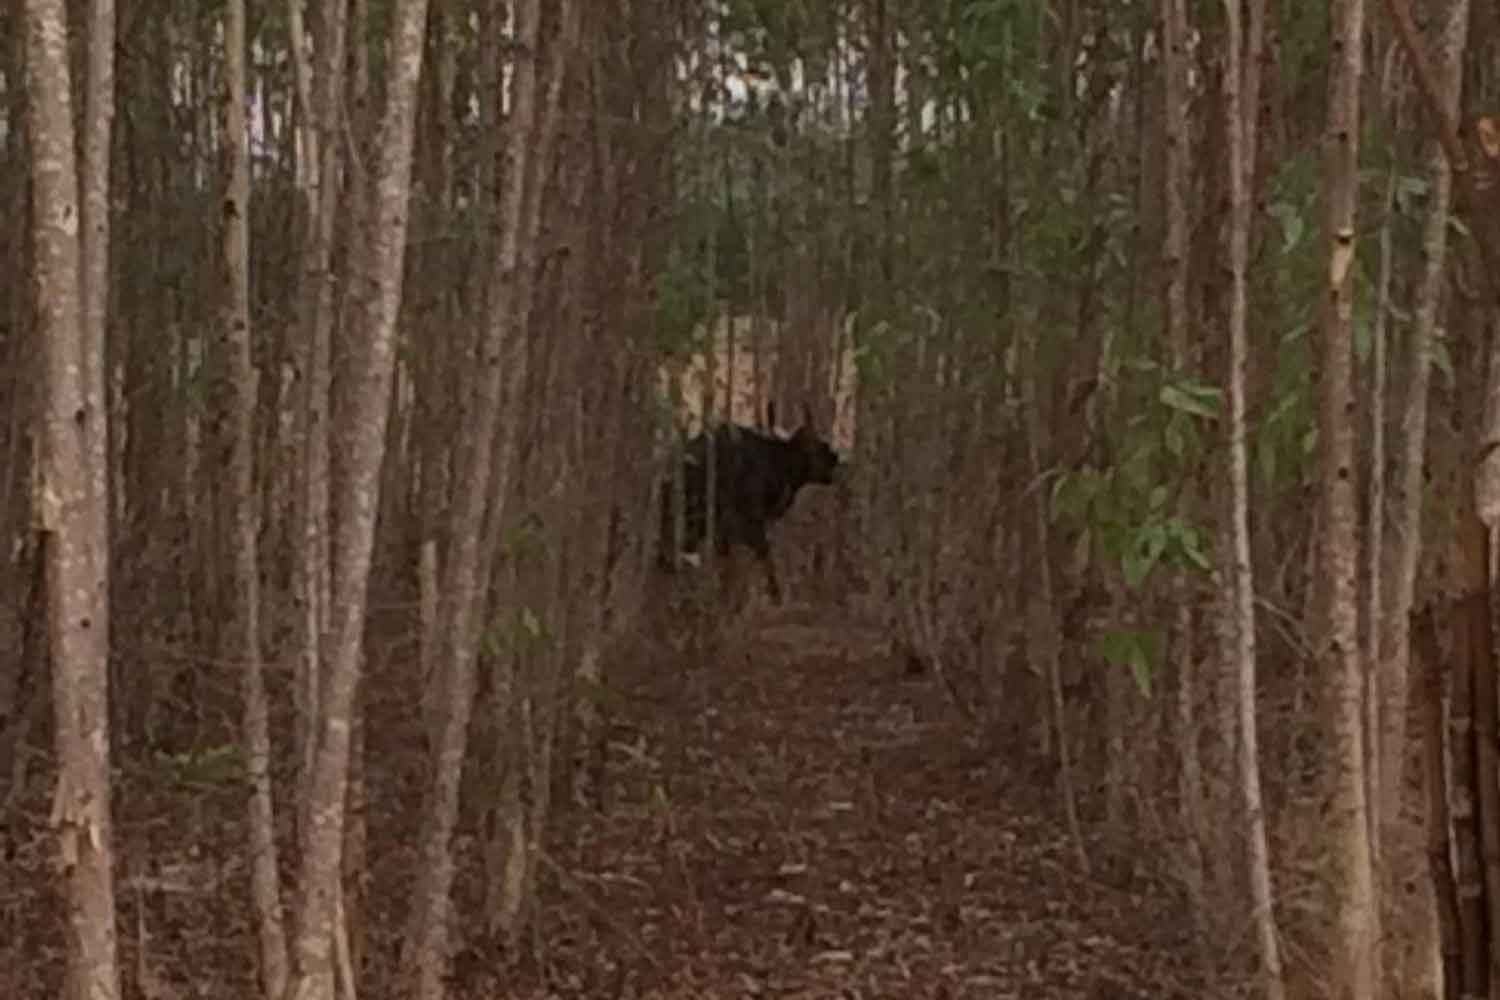 The 7-year-old male gaur, spotted in a eucalyptus plantation before it attacked two men  passing by on a motorcycle, injuring one of them. (Photo: Prasit Tangprasert)